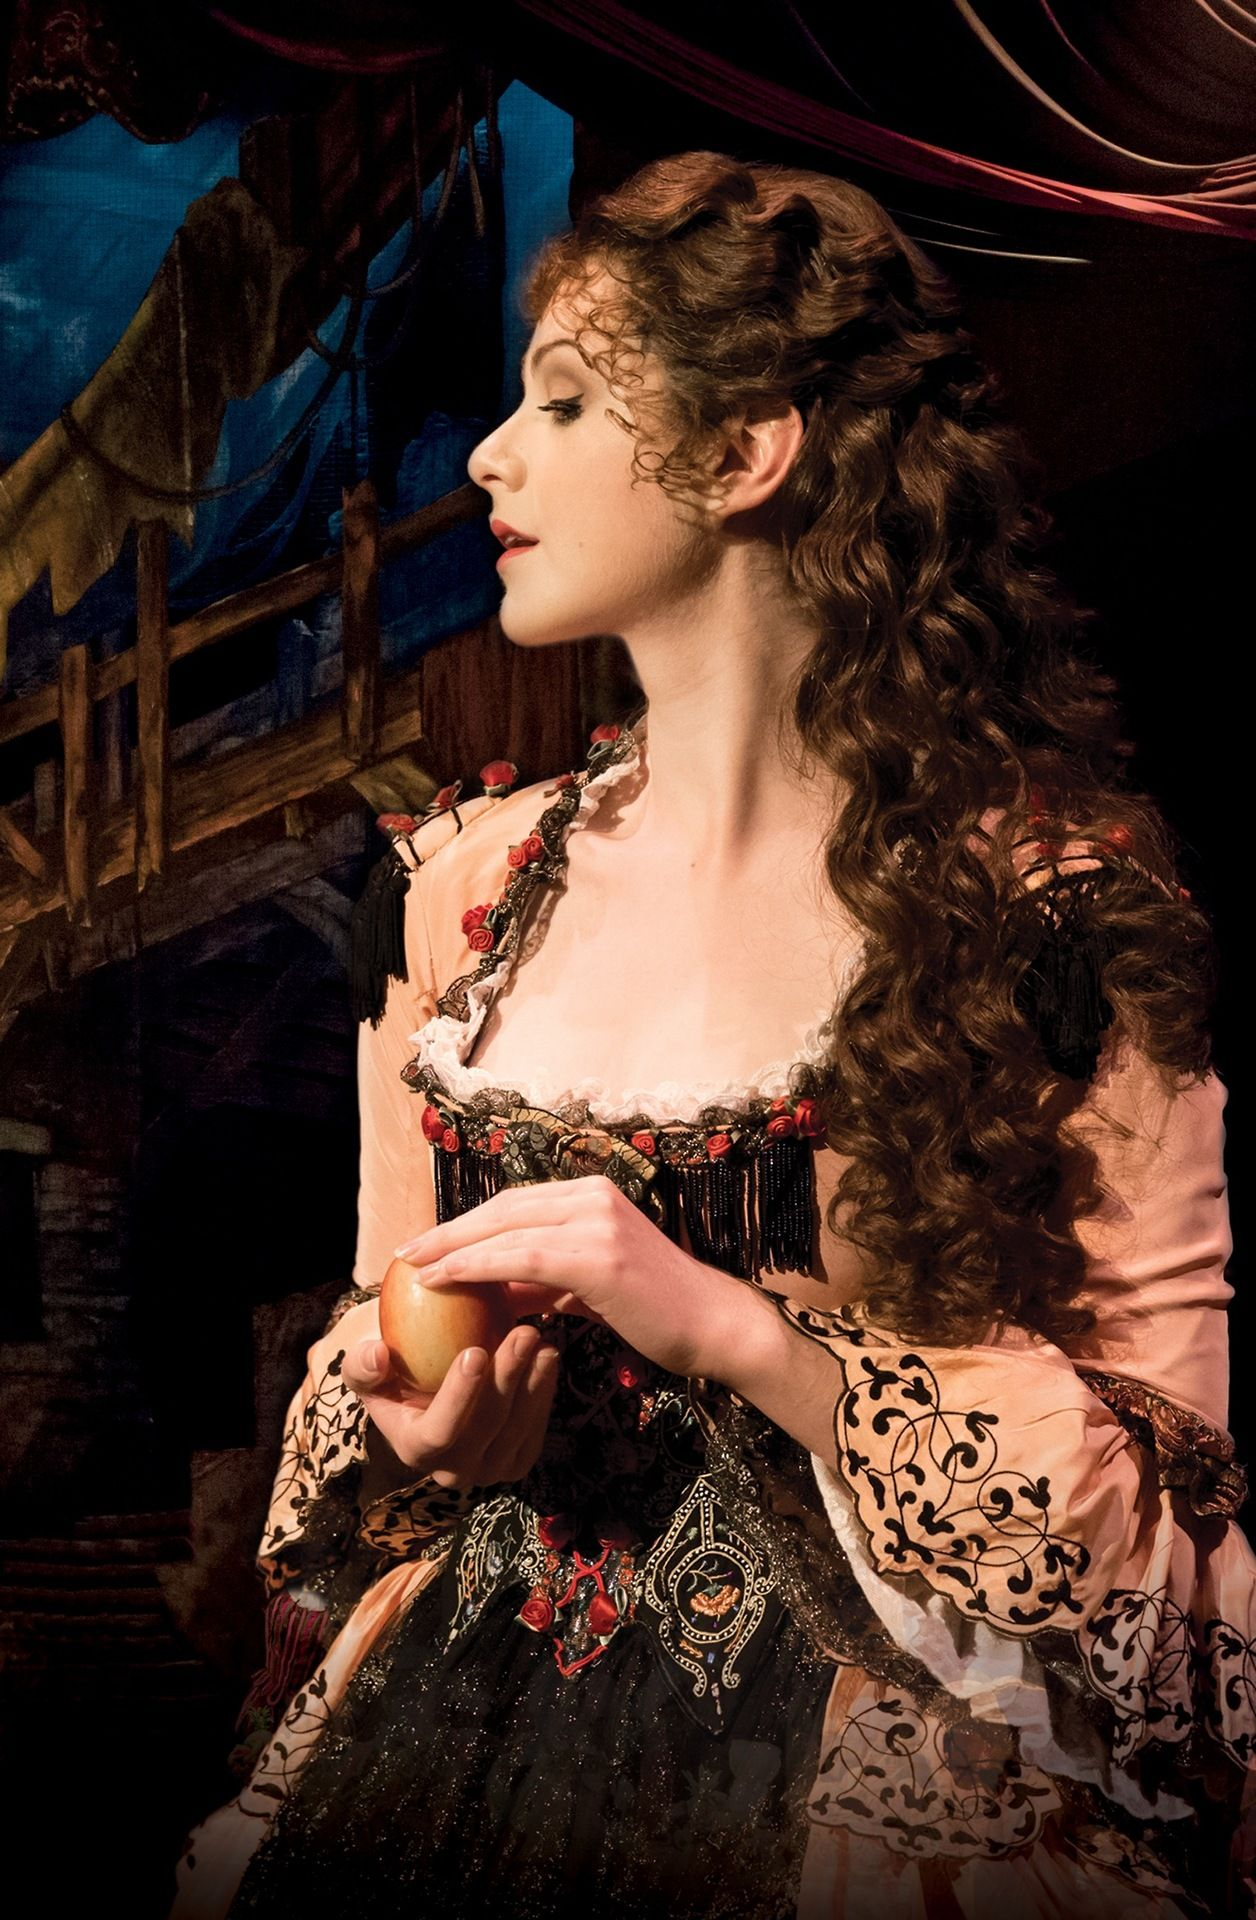 The Phantom Of The Opera Olivia Brereton As Christine Daae With